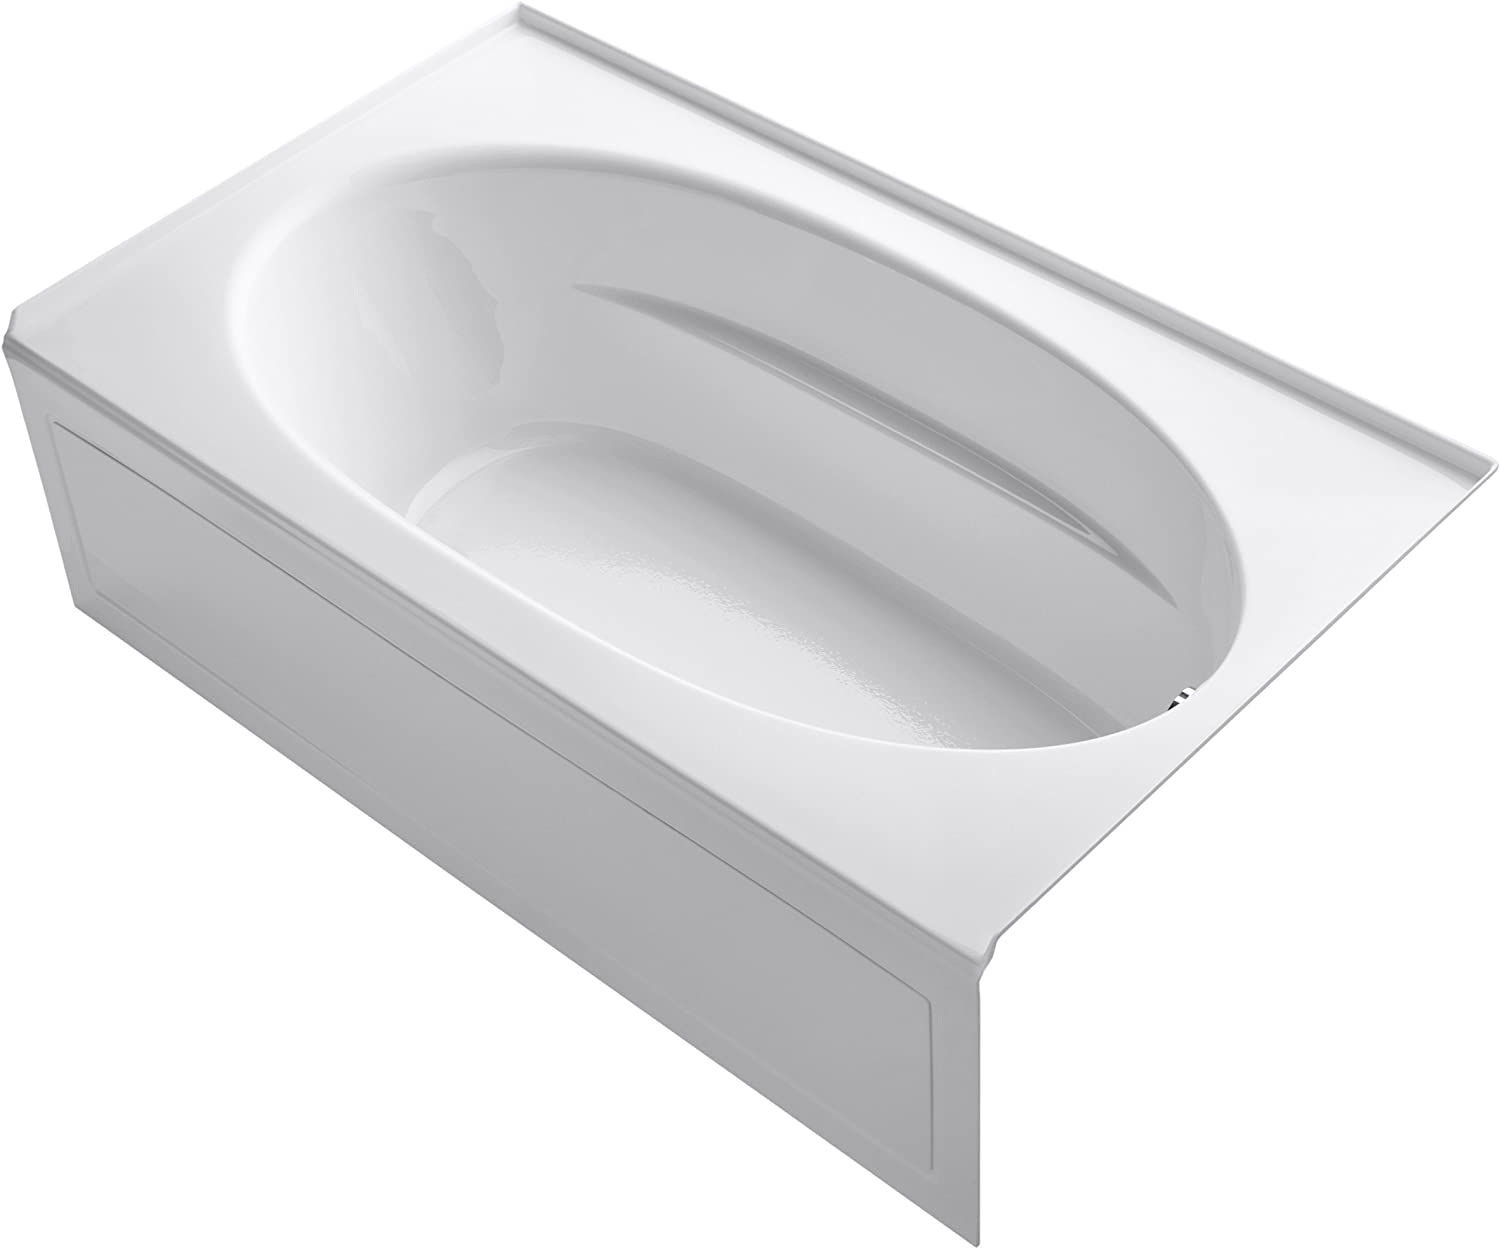 KOHLER K-1115-RA-0 Windward 6-Foot Bath with Integral Apron, White